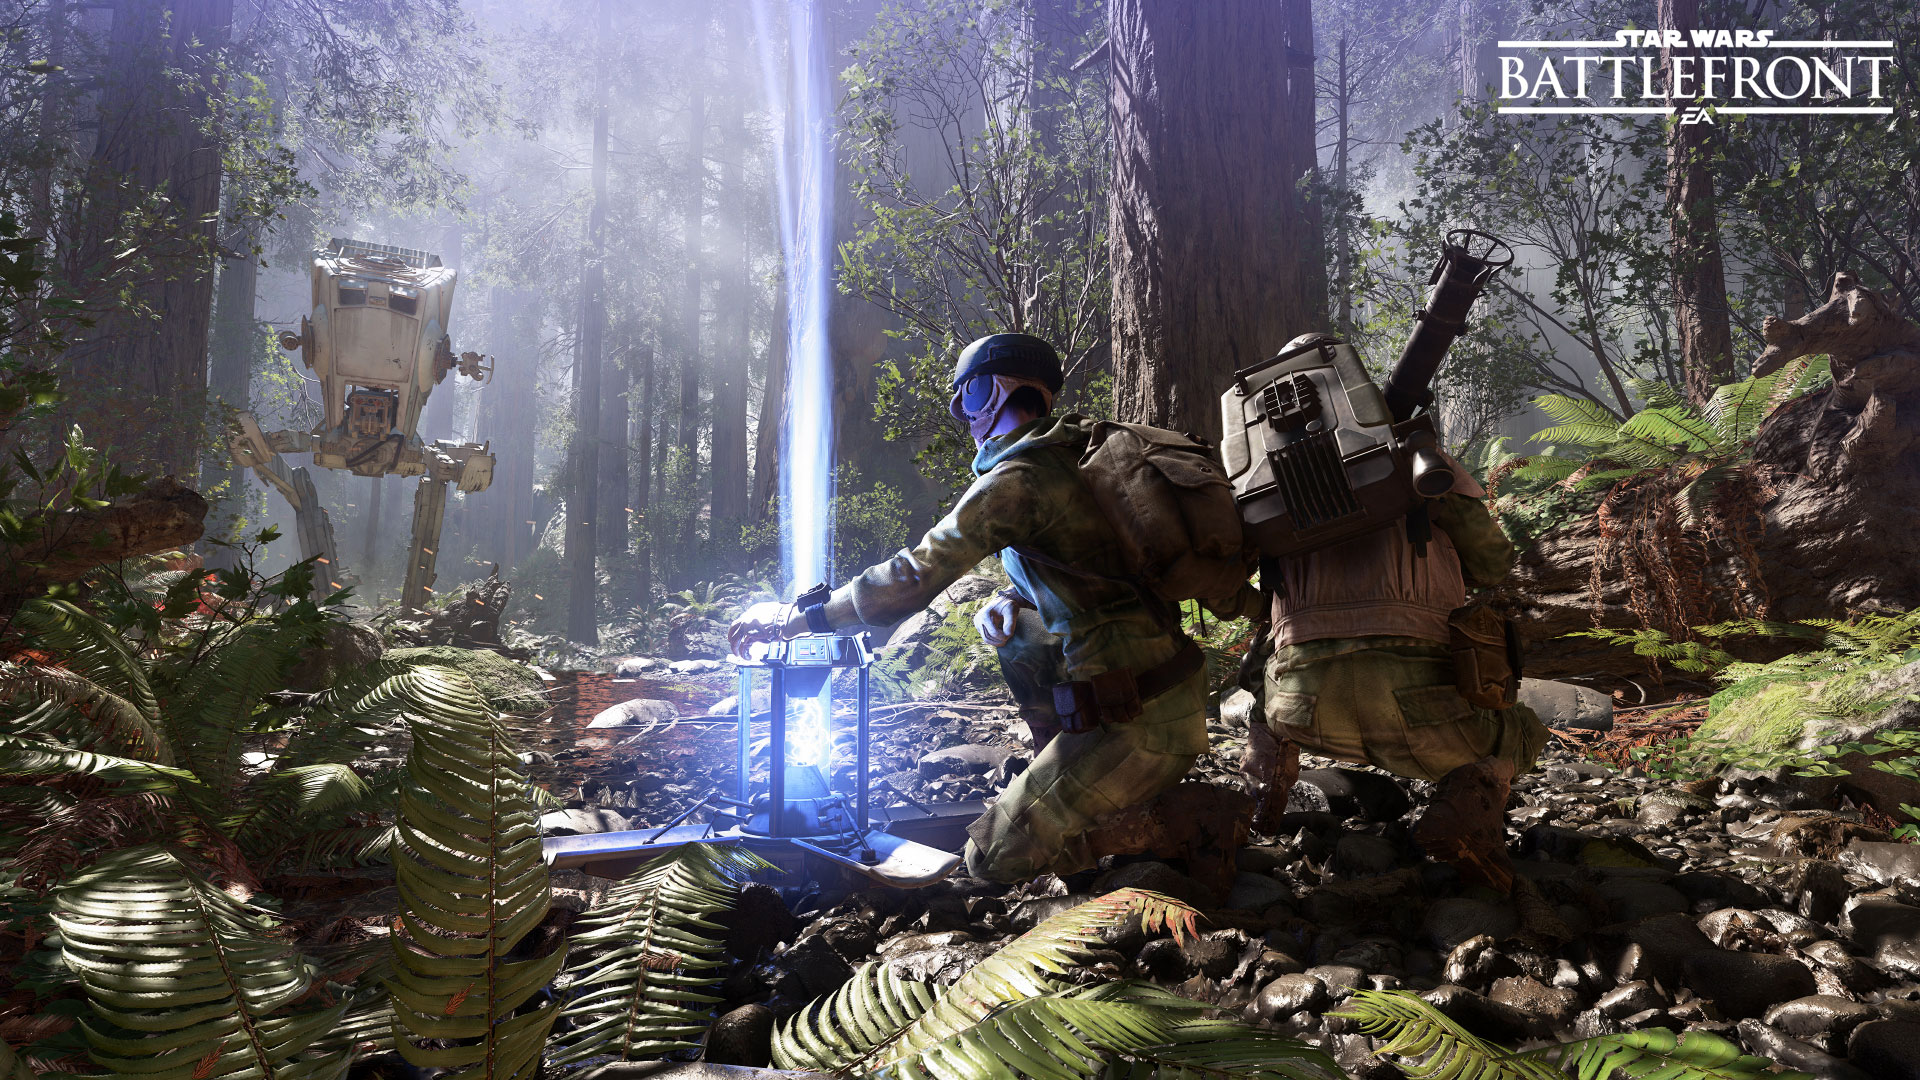 Star Wars Battlefront Sequel Confirmed, Will Tie In To New Movies rendition1.img  2